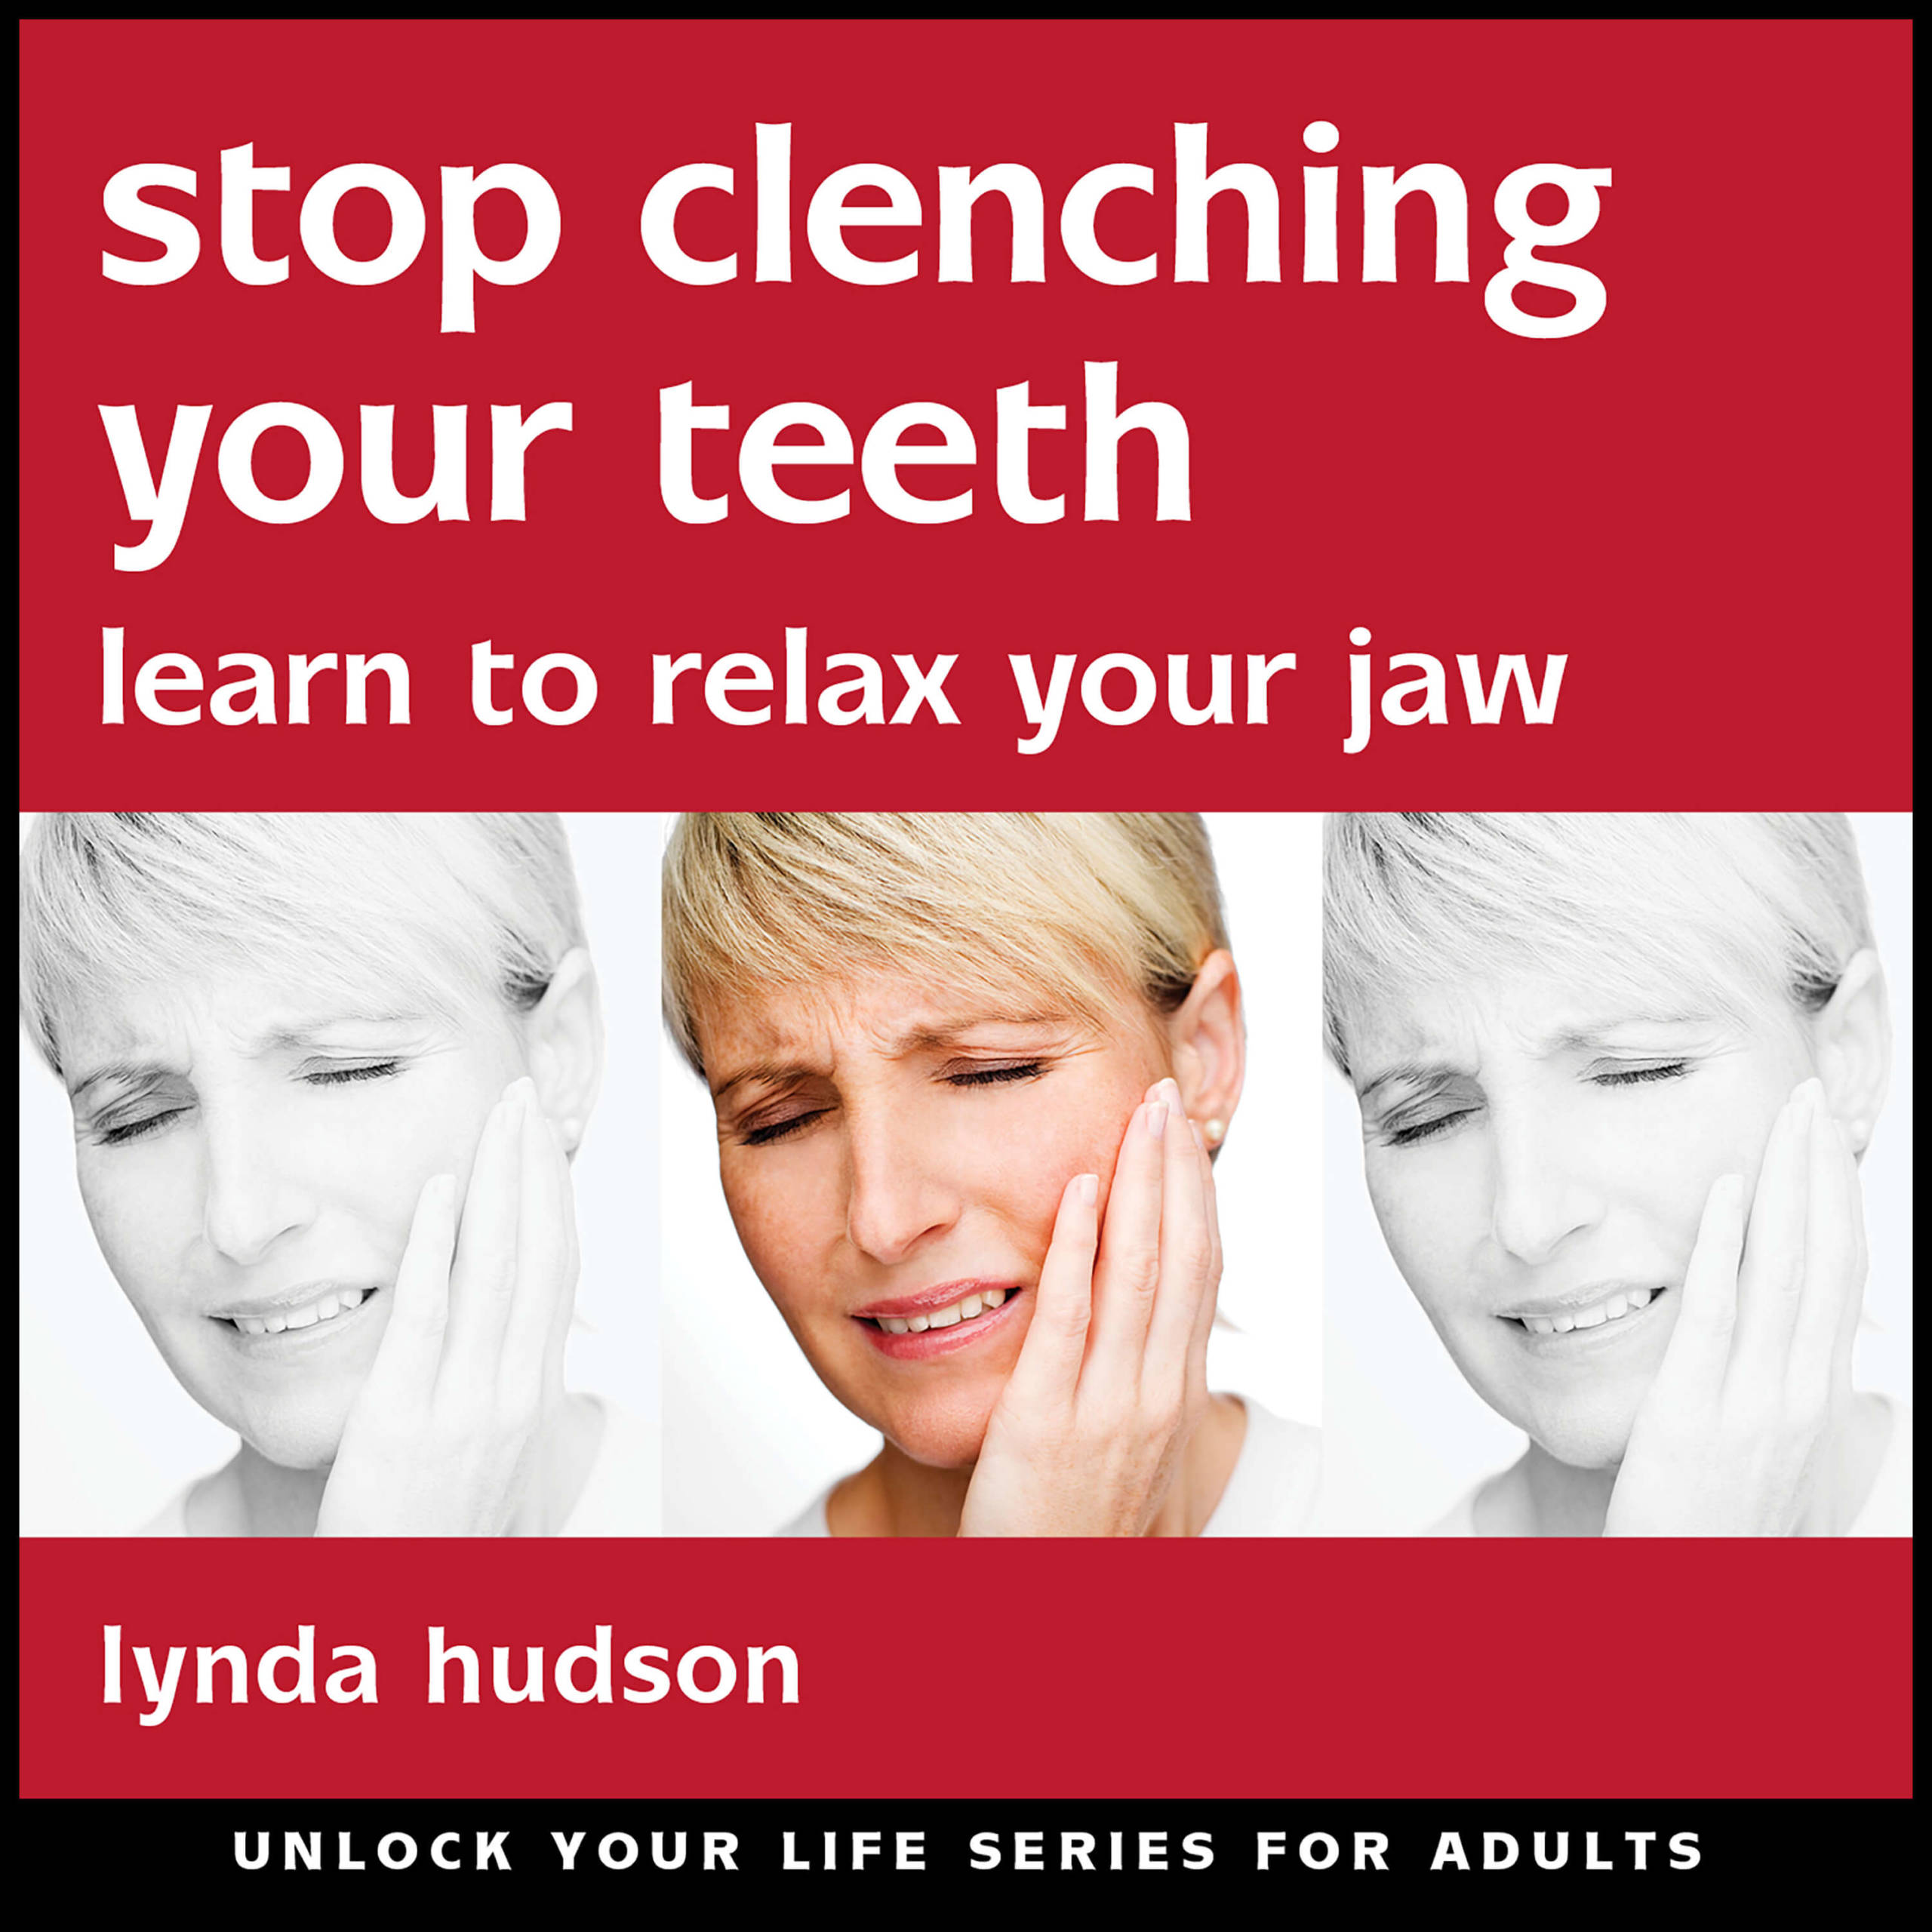 Stop clenching your teeth